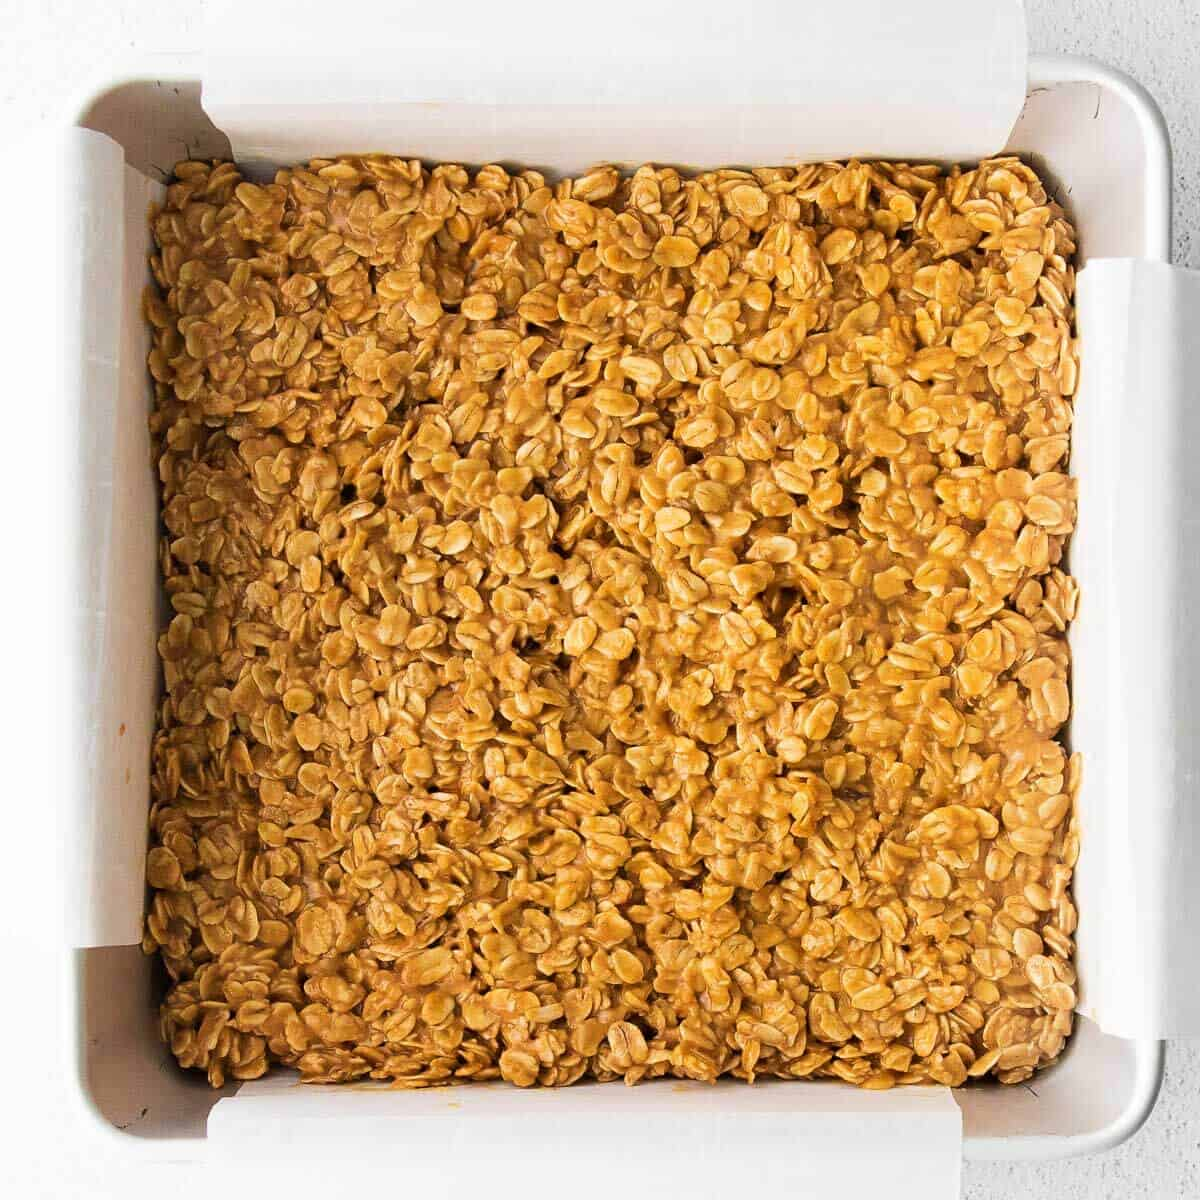 granola bar mixture spread out in a pan